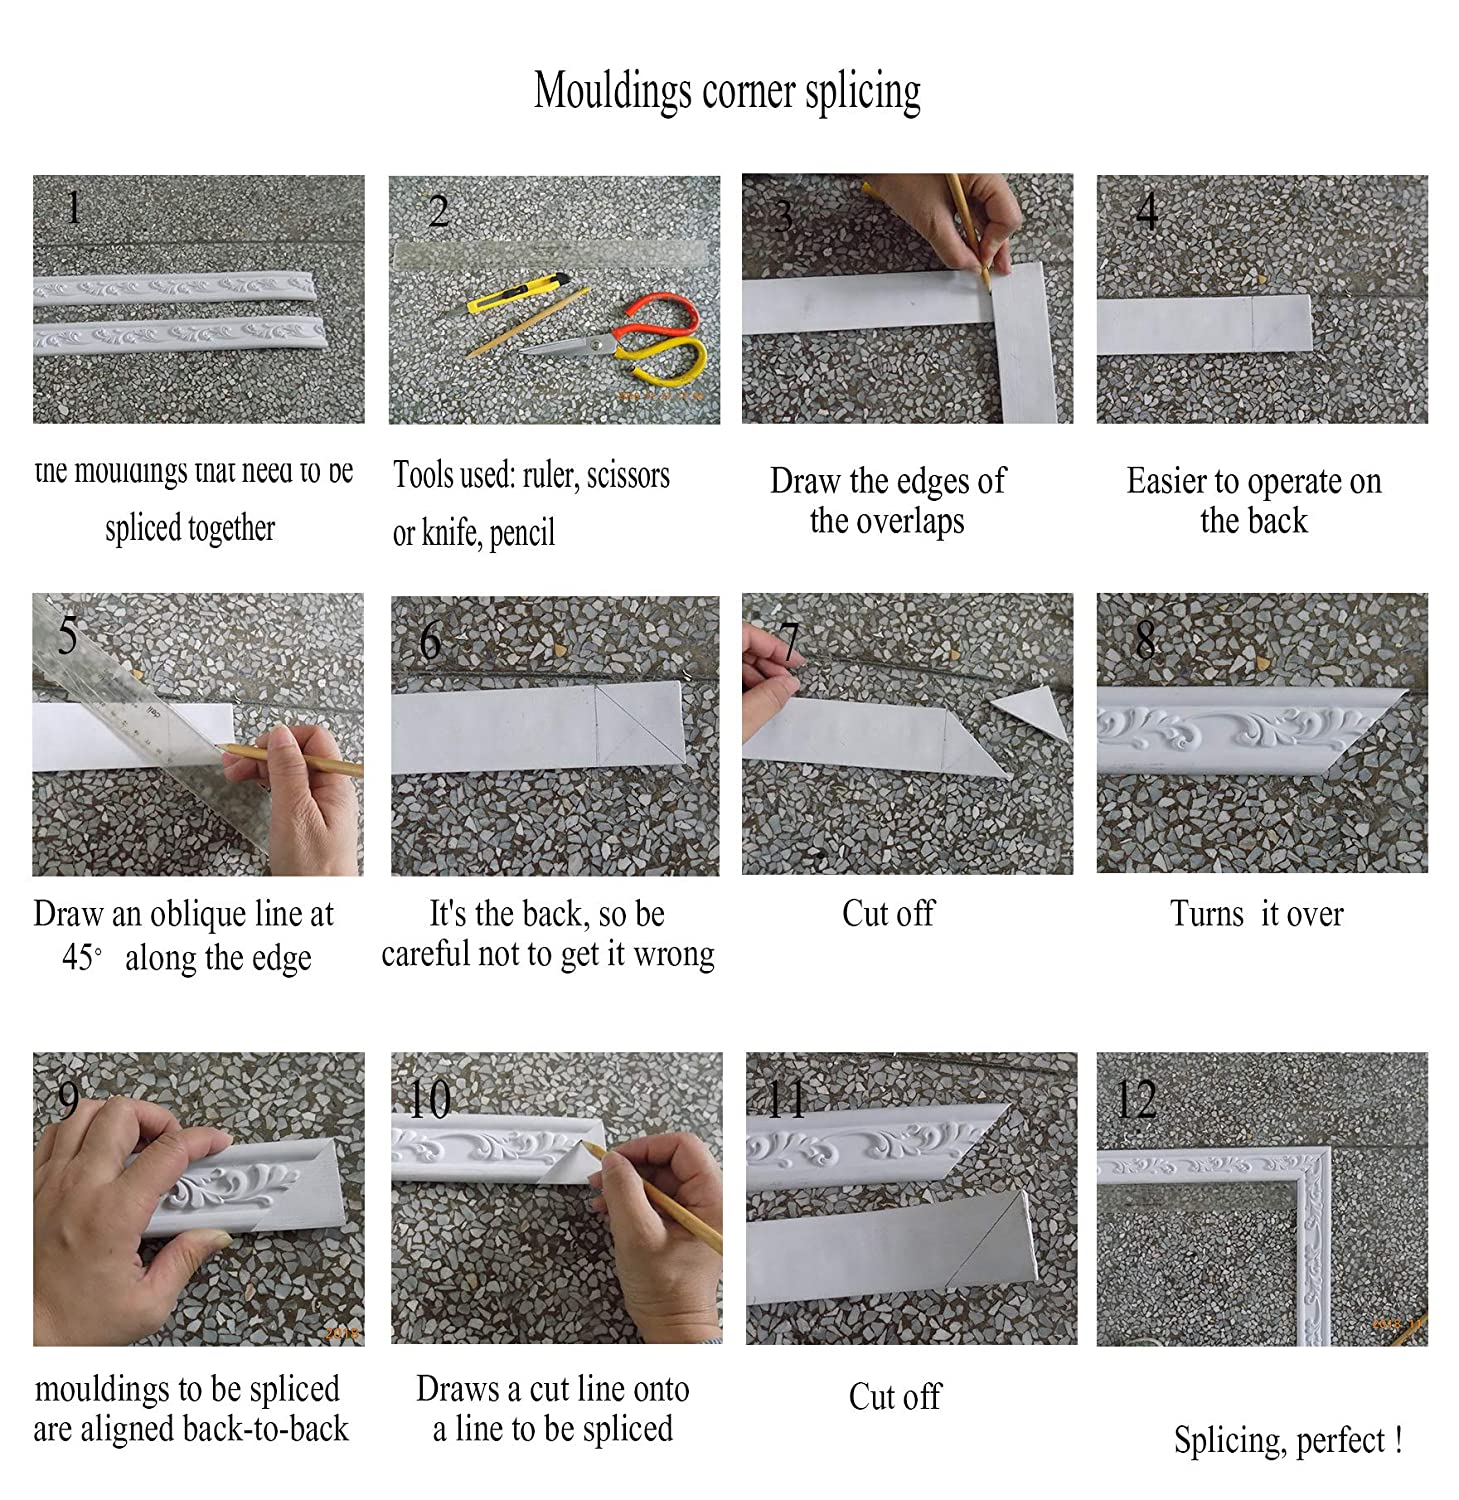 1.8 x 115 Zhangbl Flexible Moulding Trim for Background Wall or Wall Waist 1.8 inch Width x 0.31 Thickness 4.6cm